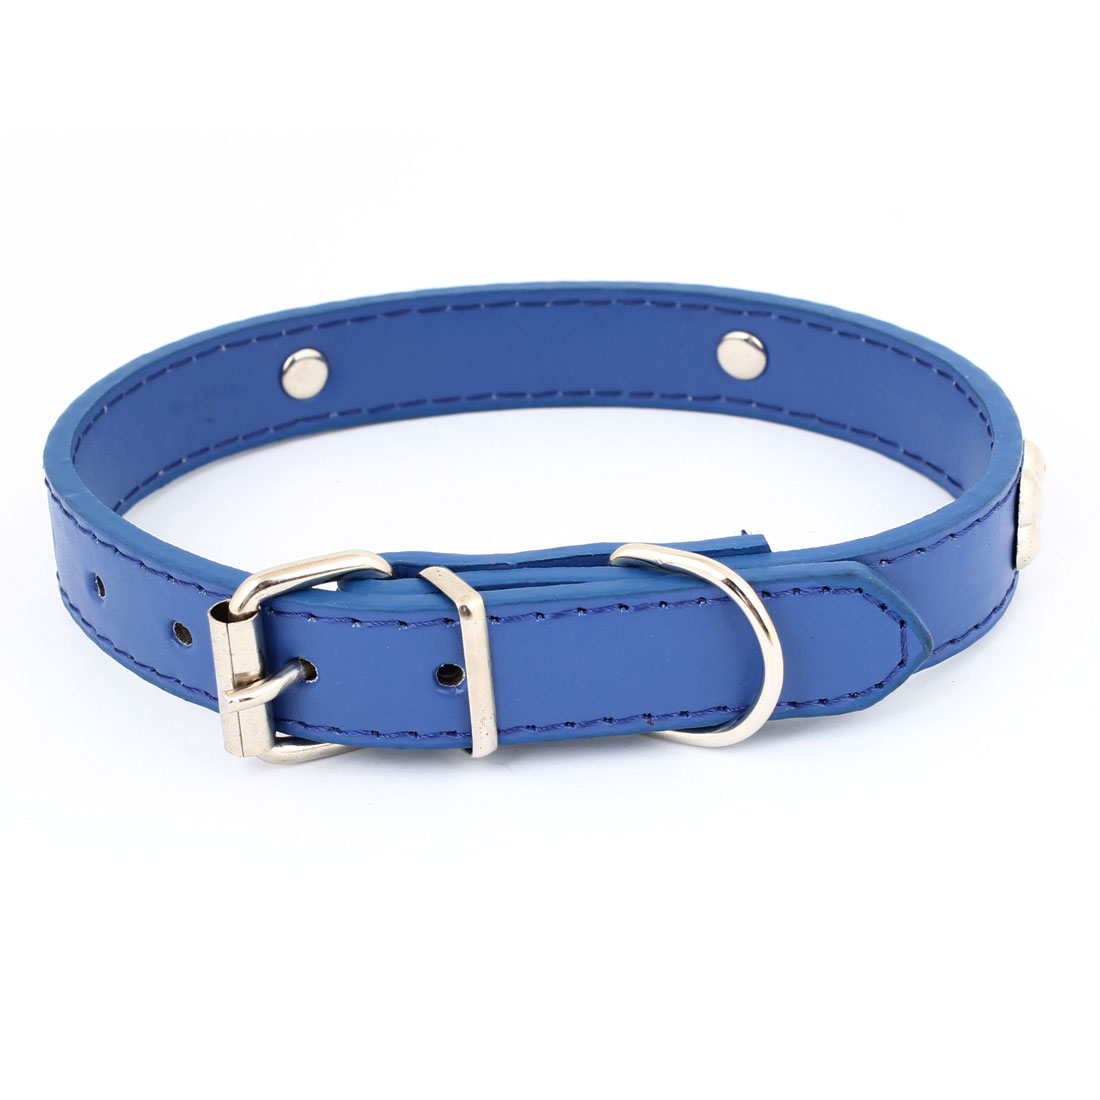 Metal Single Pin Buckle 2cm Wide Bone Detail Faux Leather Pet Dog Collar Blue